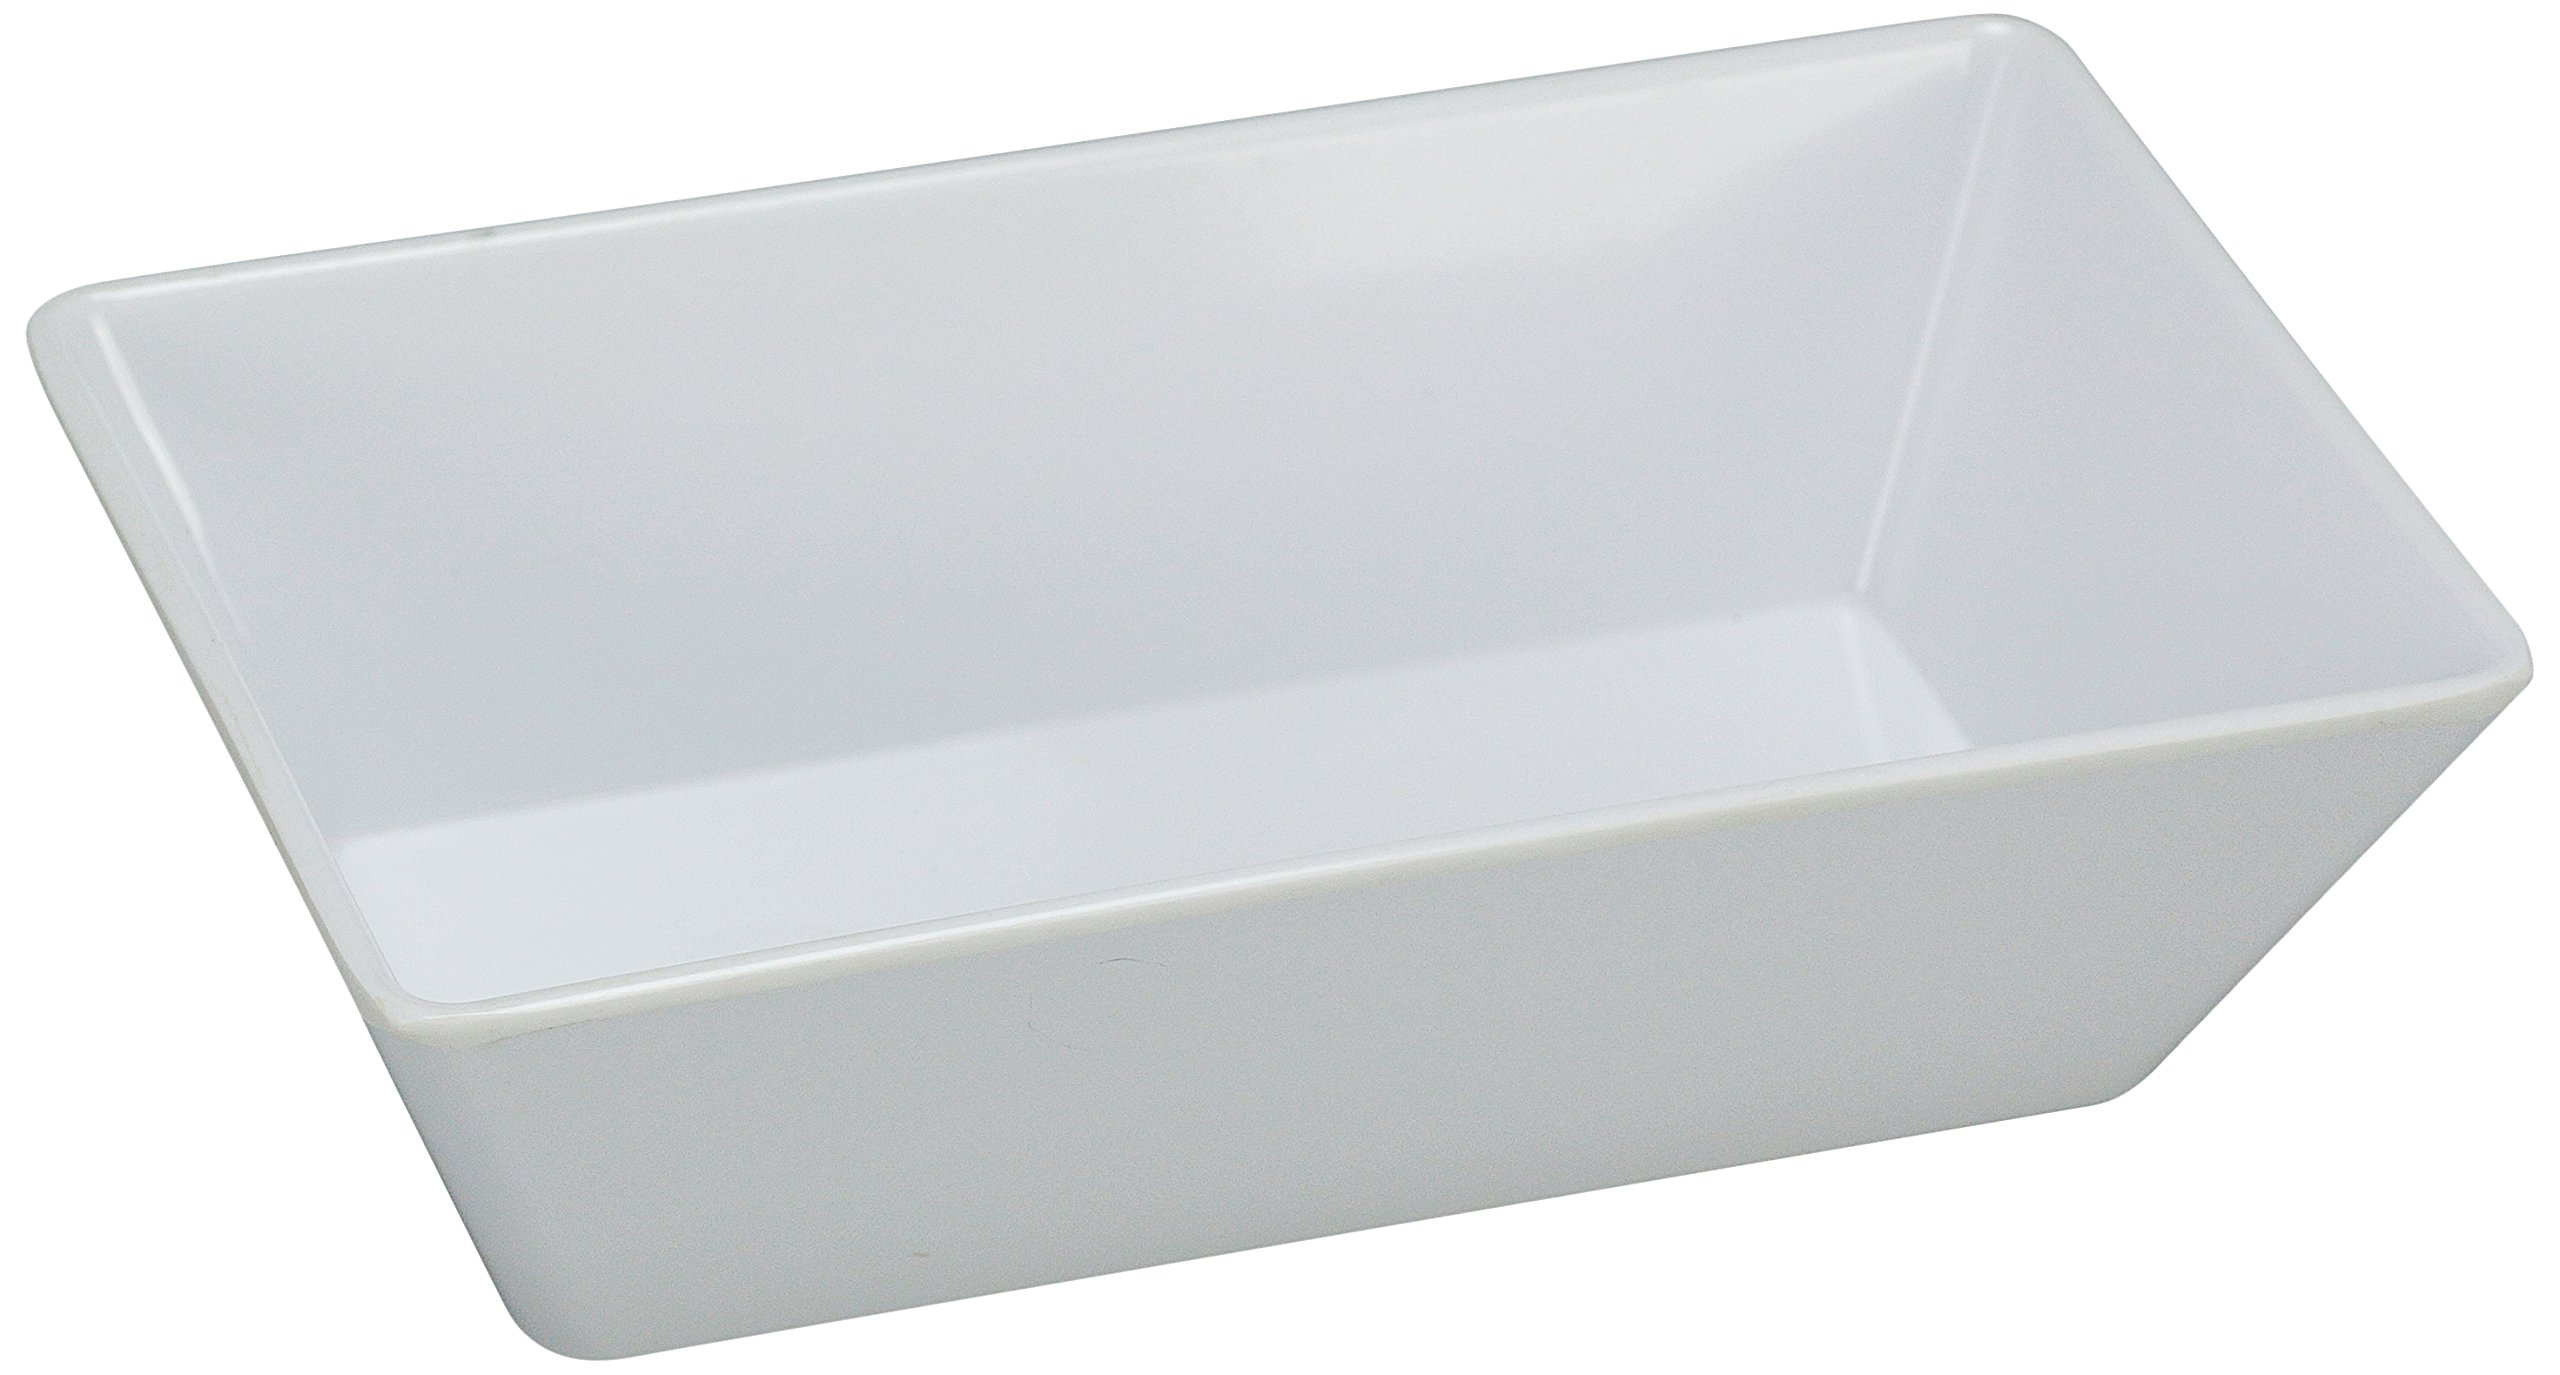 Yanco RM-614 Rome Rectangular Deep Plate, 13.75'' Length, 10'' Width, 2.5'' Height, Melamine, White Color, Pack of 12